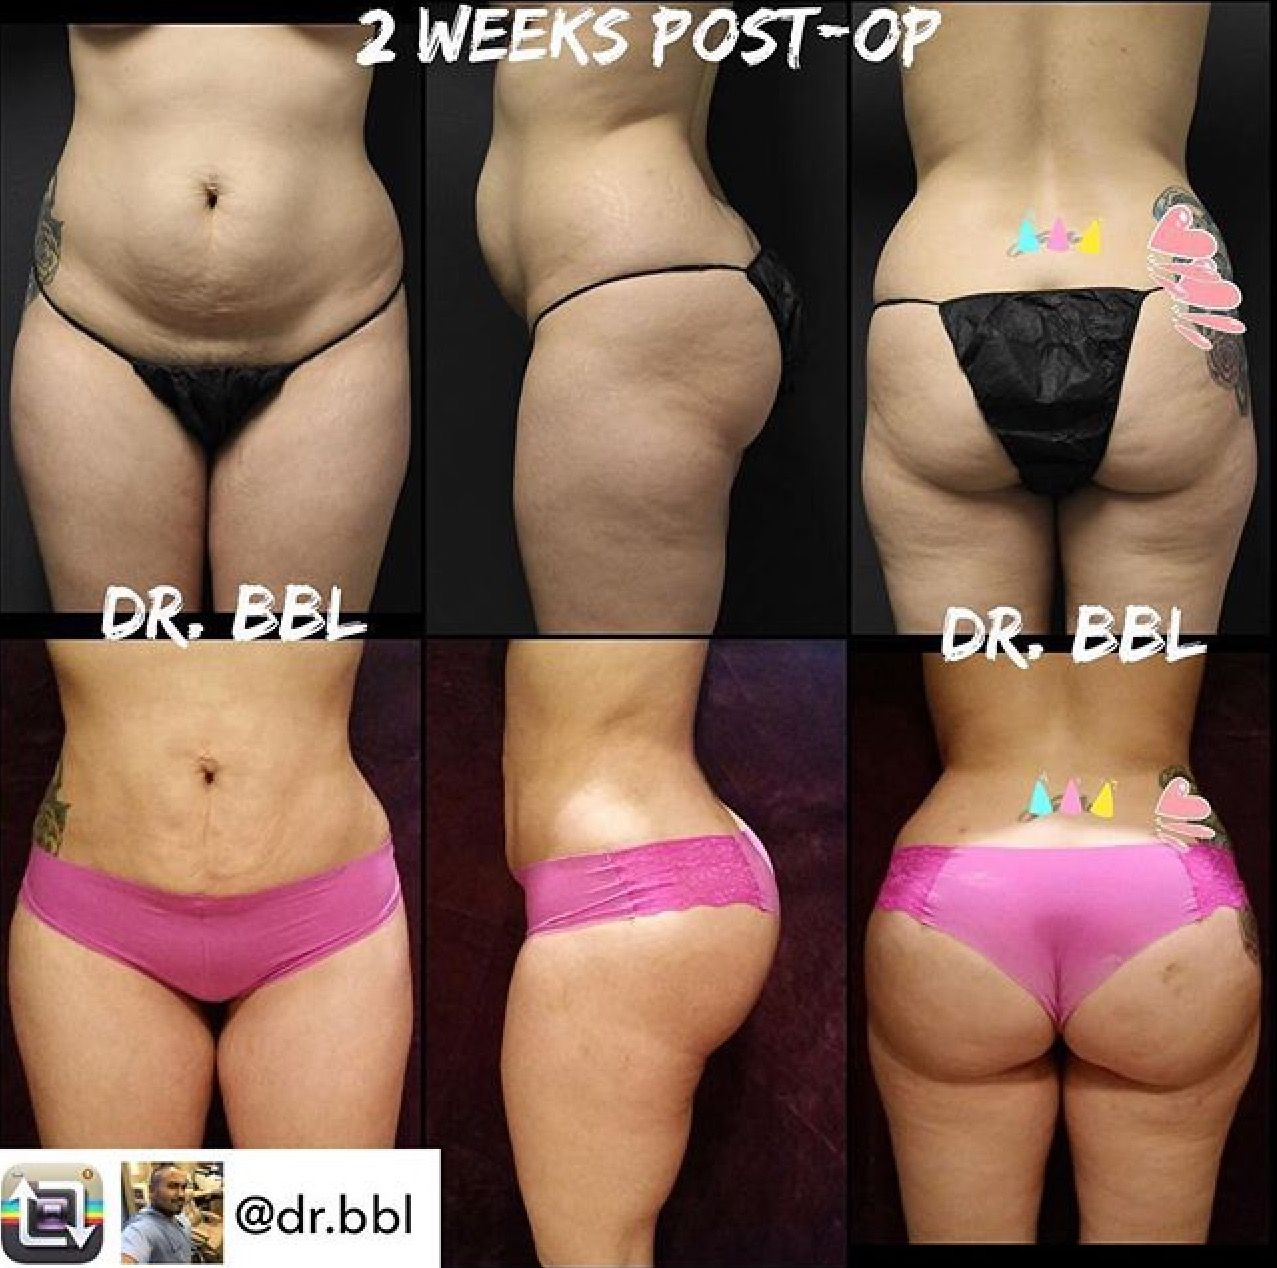 💁Repost from @dr bbl 2 week Lipo360 with BBL surgery photo